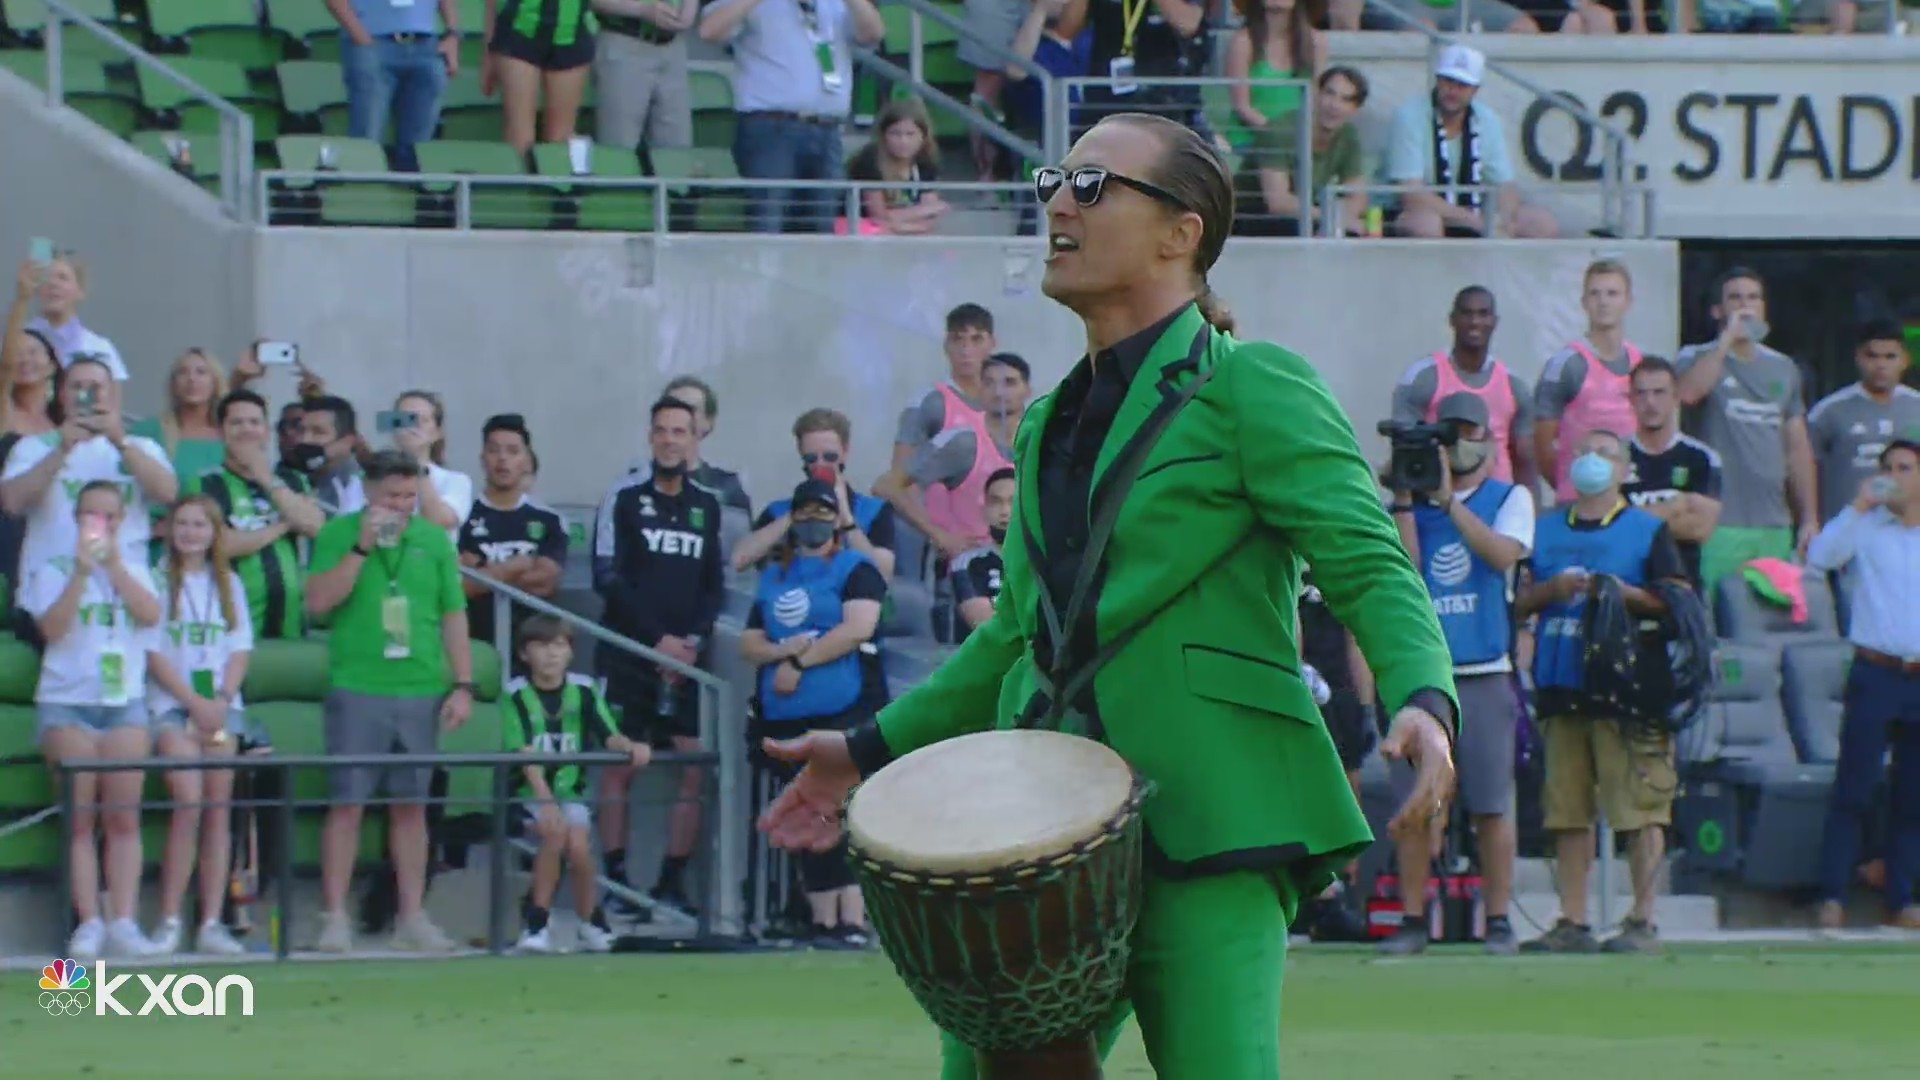 Matthew McConaughey led the crowd in chants before kickoff at Austin FC's home opener (KXAN Photo)